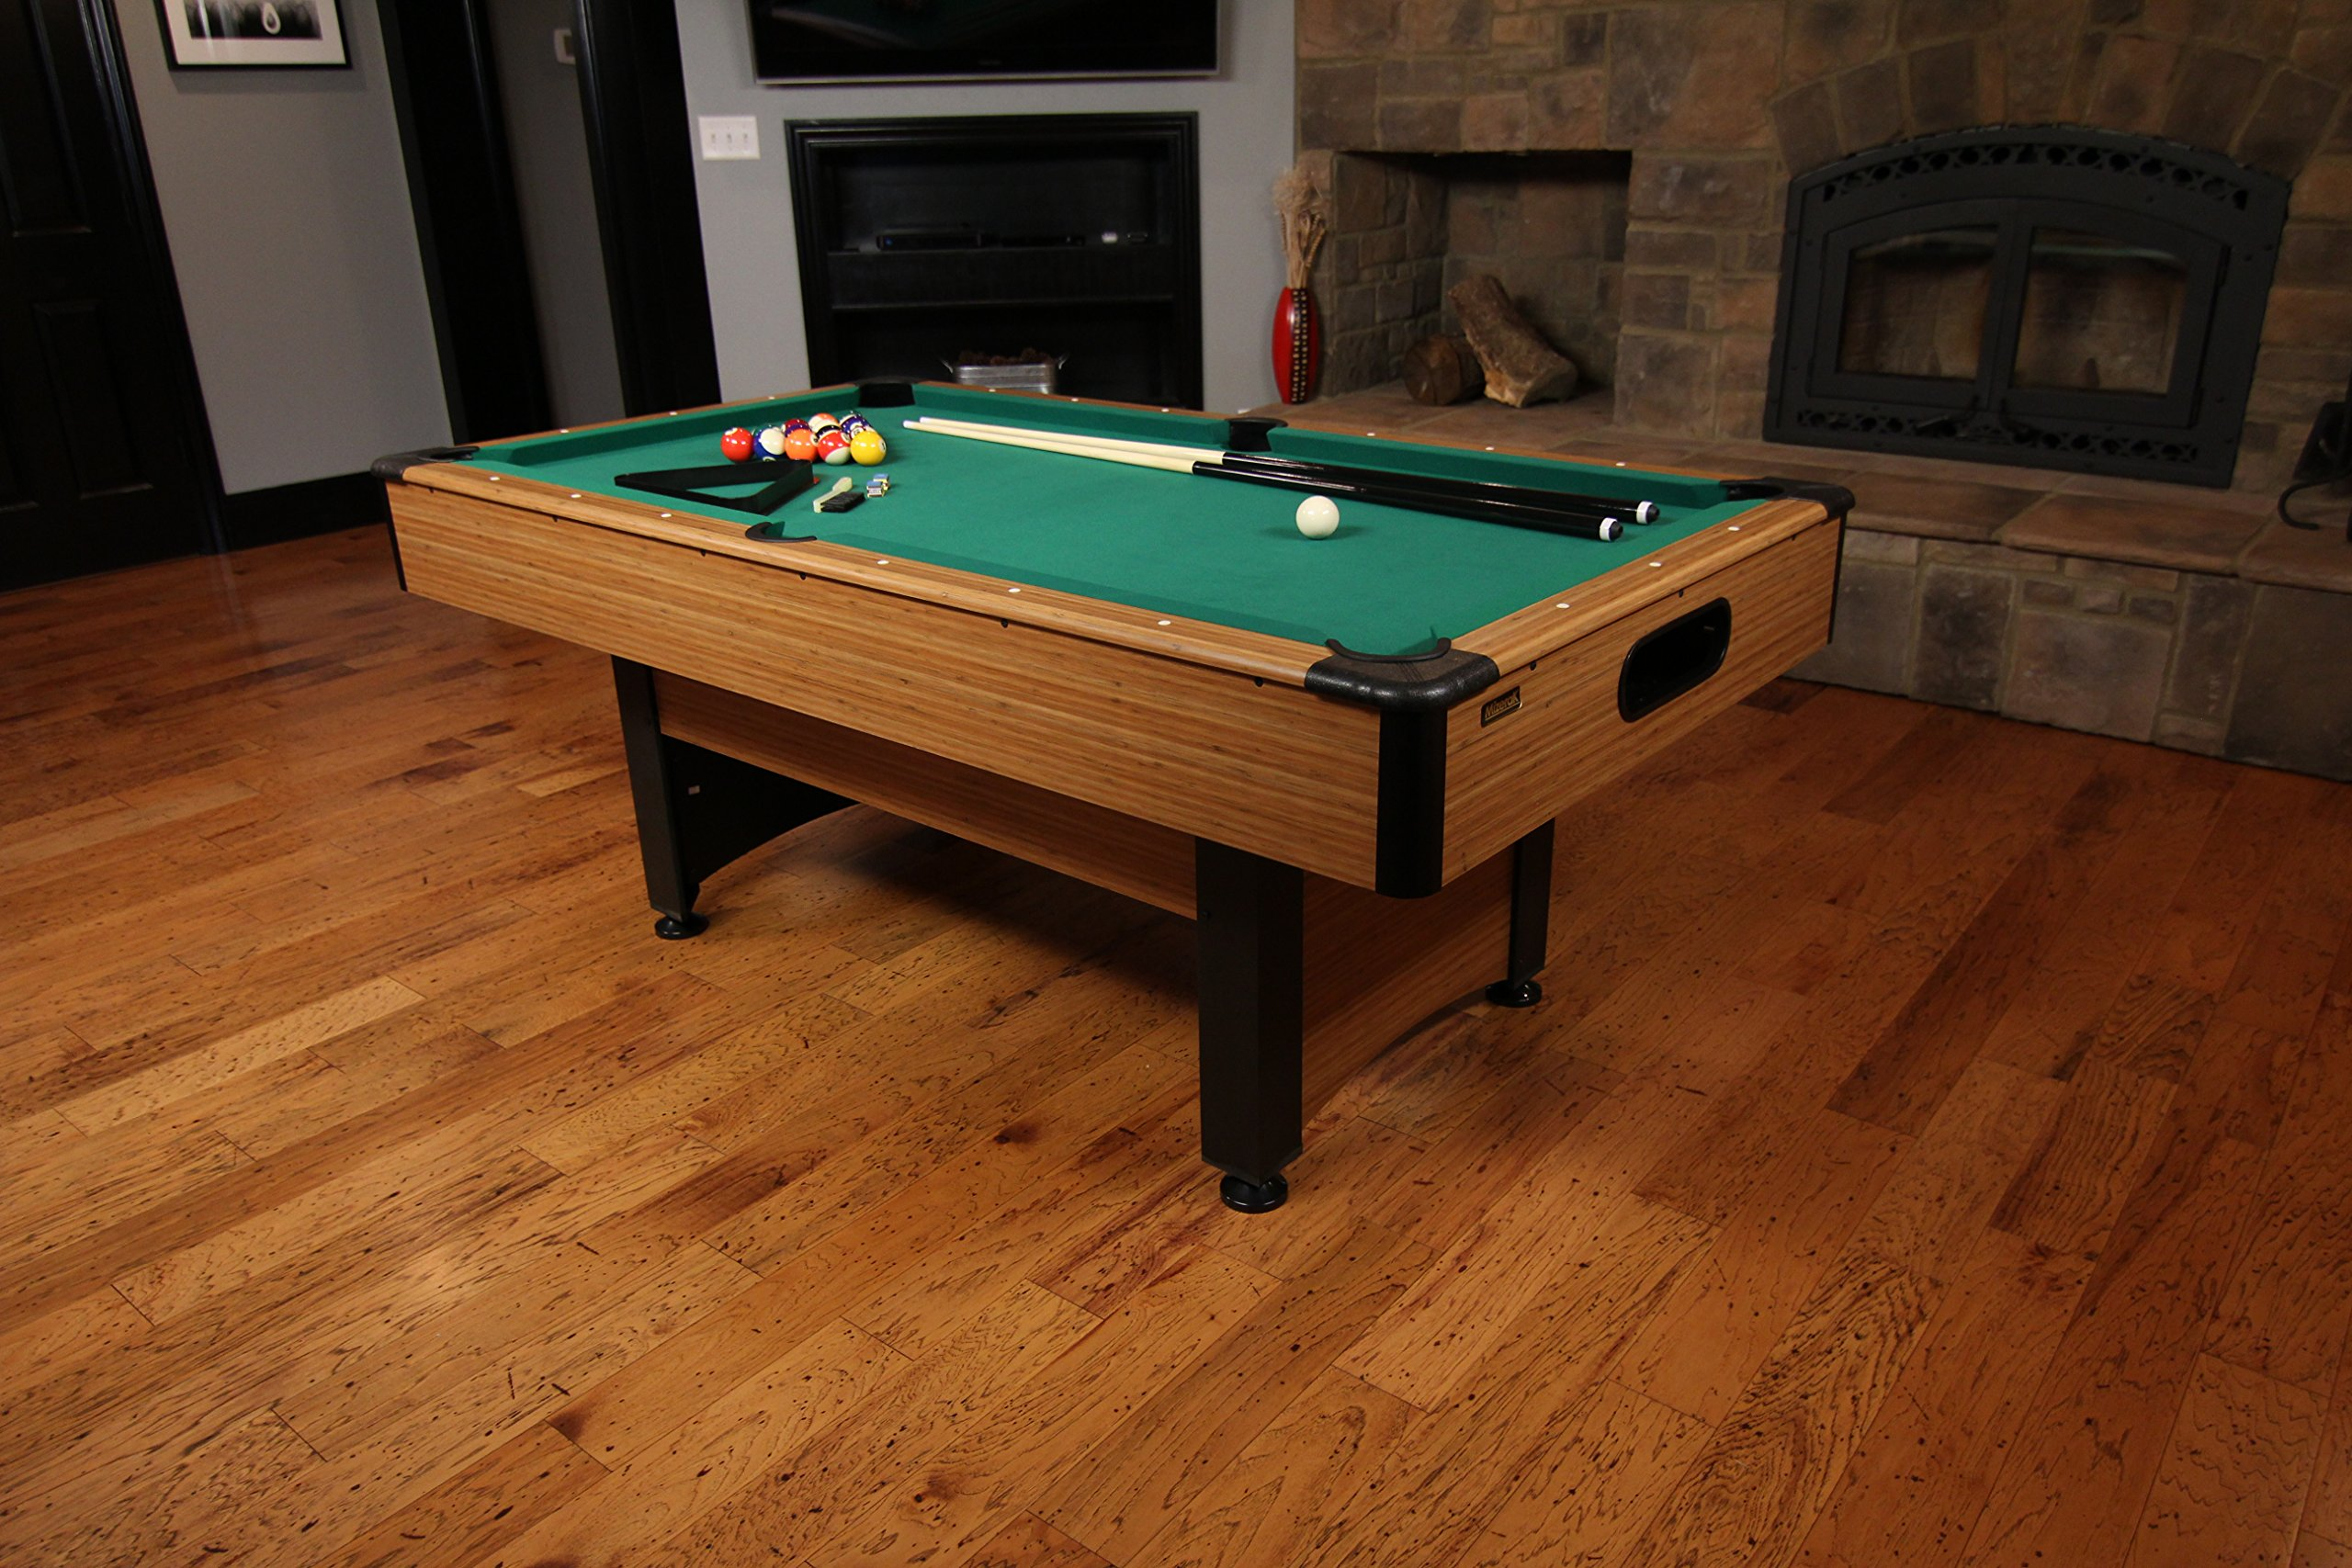 Mizerak Dynasty Space Saver 6.5' Billiard Table with Compact Design to Fit in Smaller Rooms, Leg Levelers for Perfectly Even Playing Surface, Double-sealed MDF Play-bed for Consistent Roll and Automatic Ball Return for Quick Game Reset by Mizerak (Image #2)